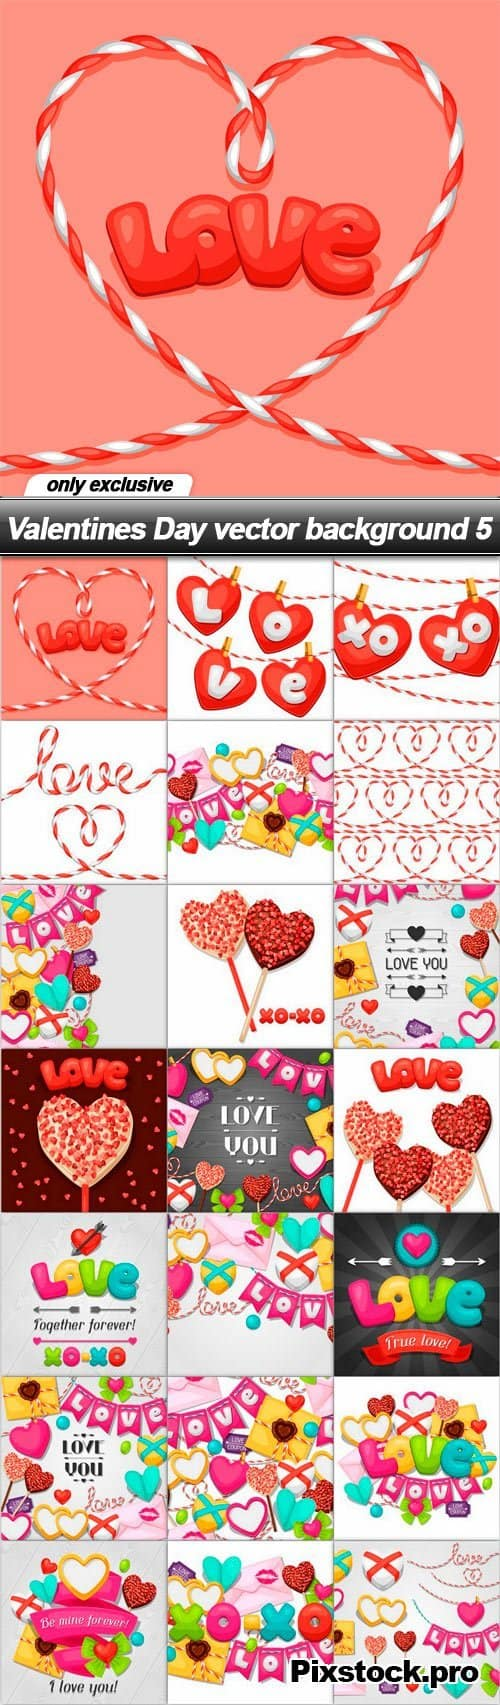 Valentines Day vector background 5 – 21 EPS